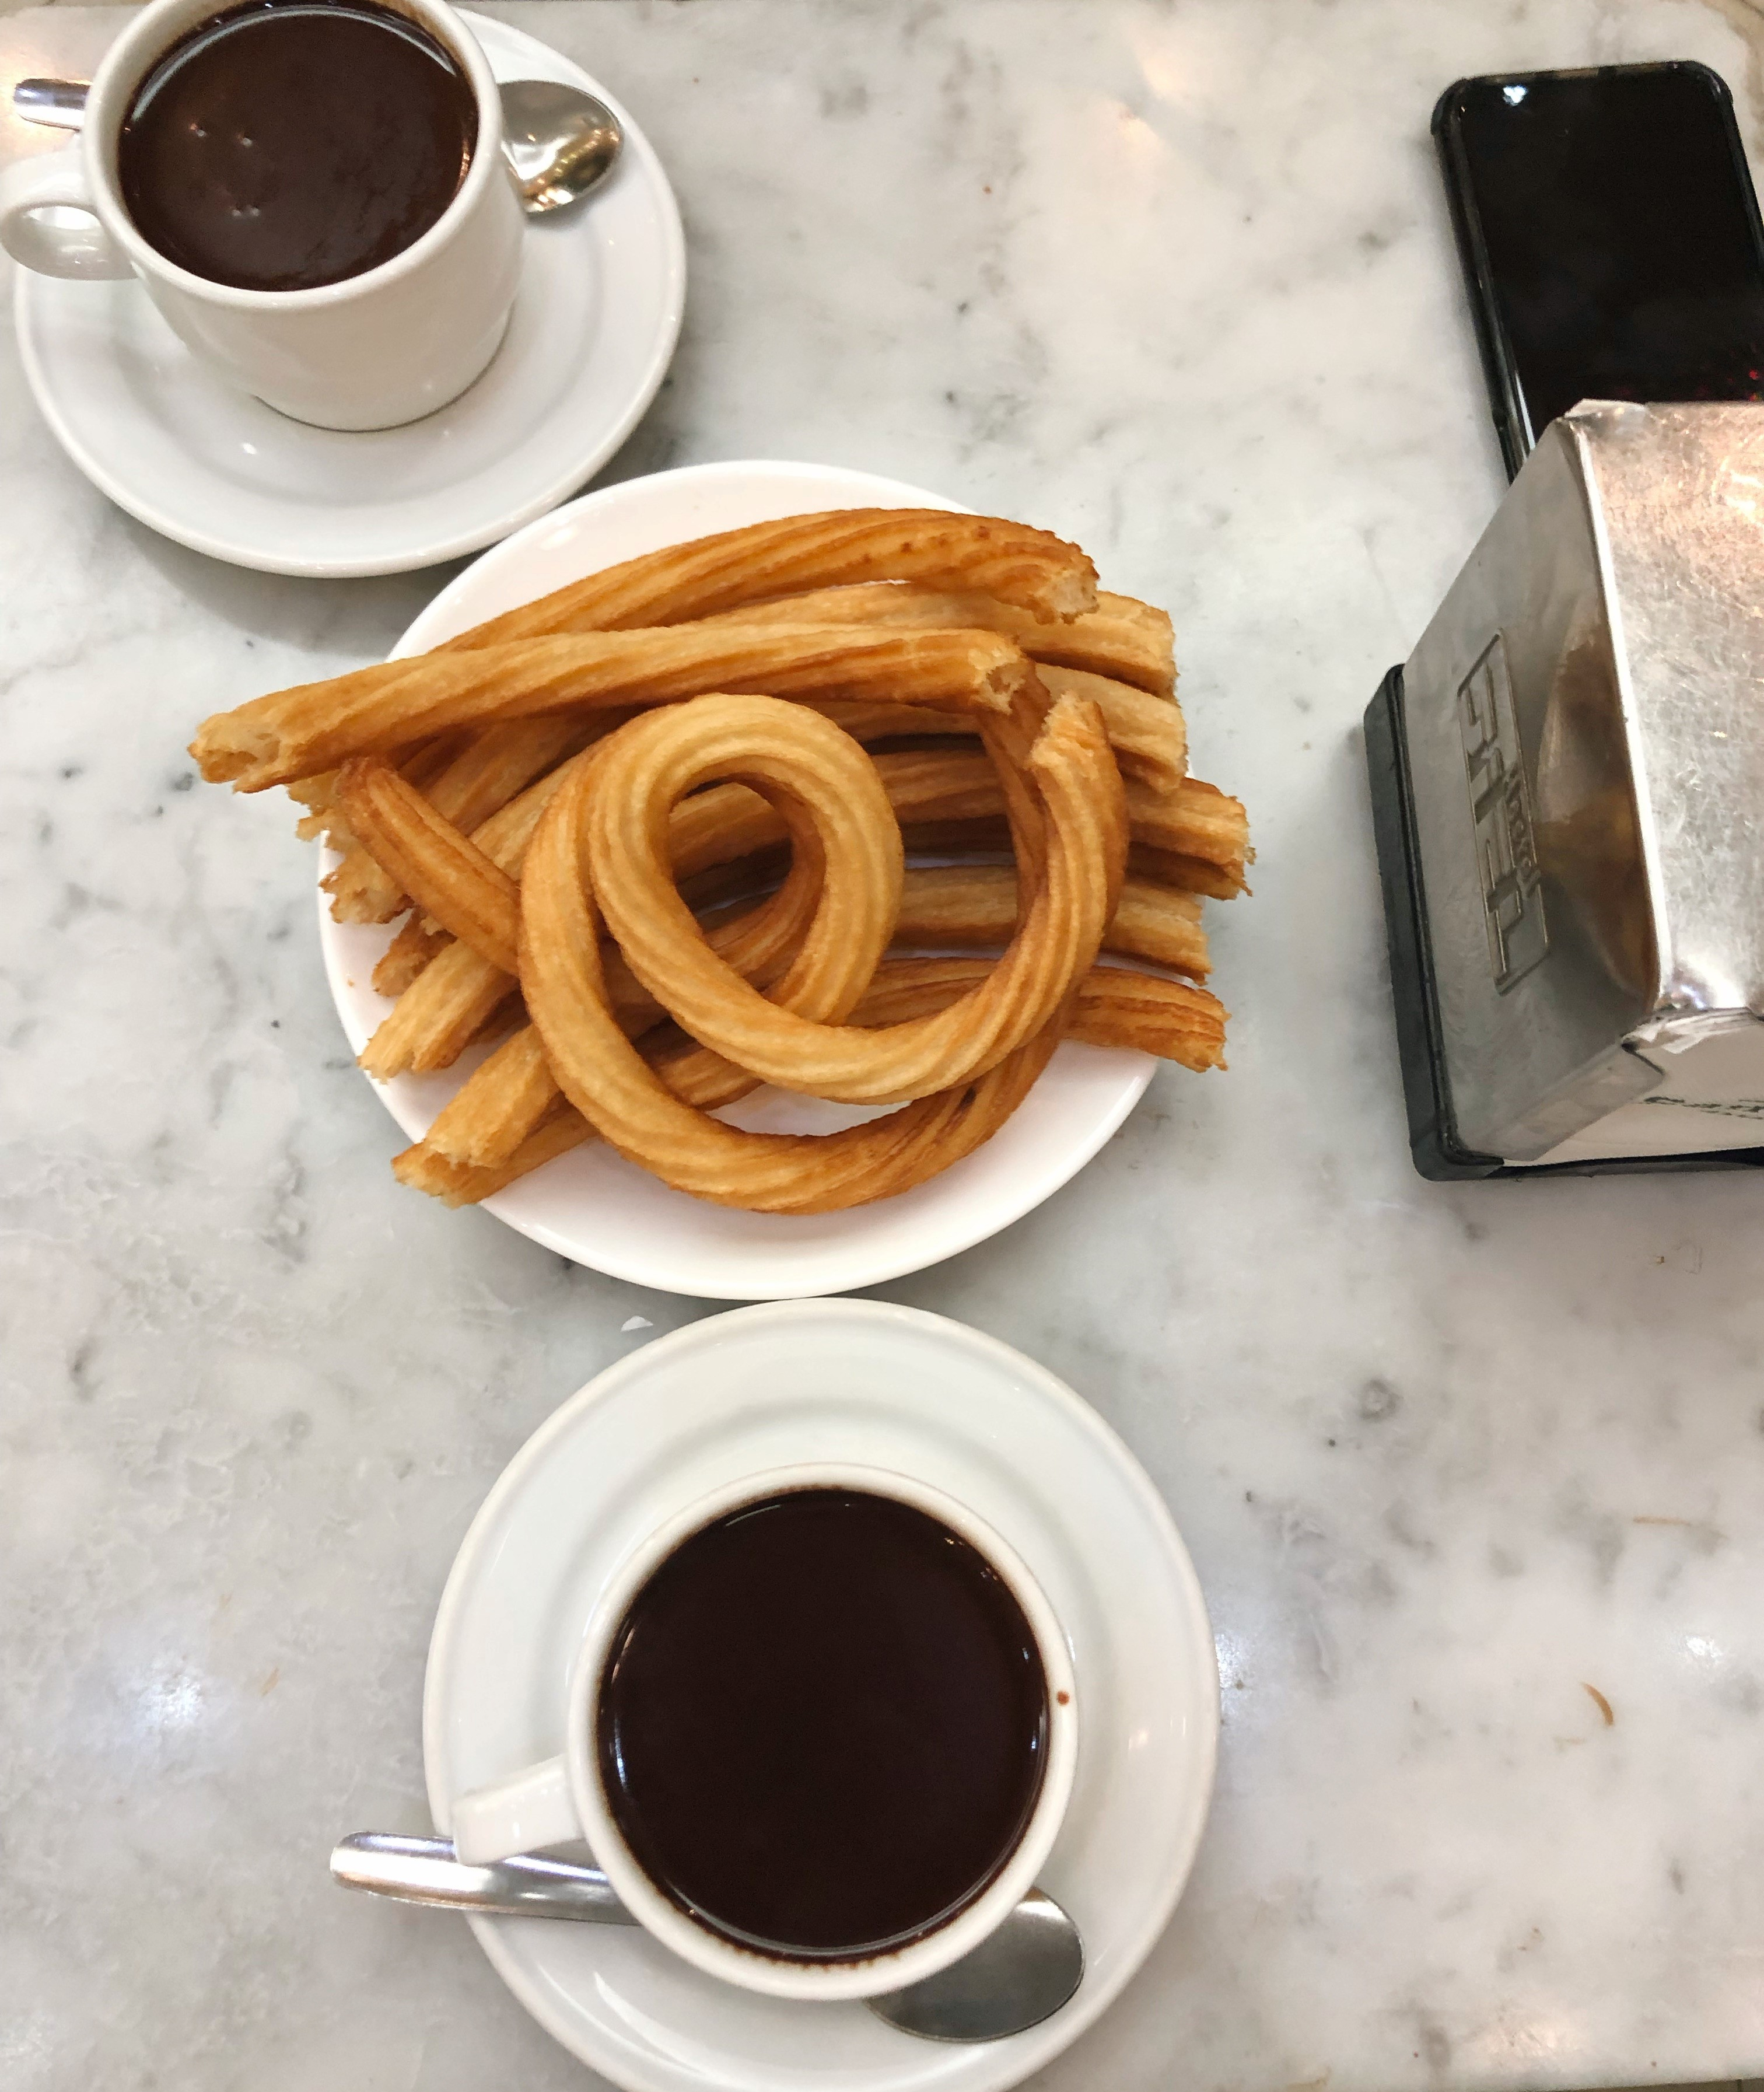 A plate of churros and two black coffees.